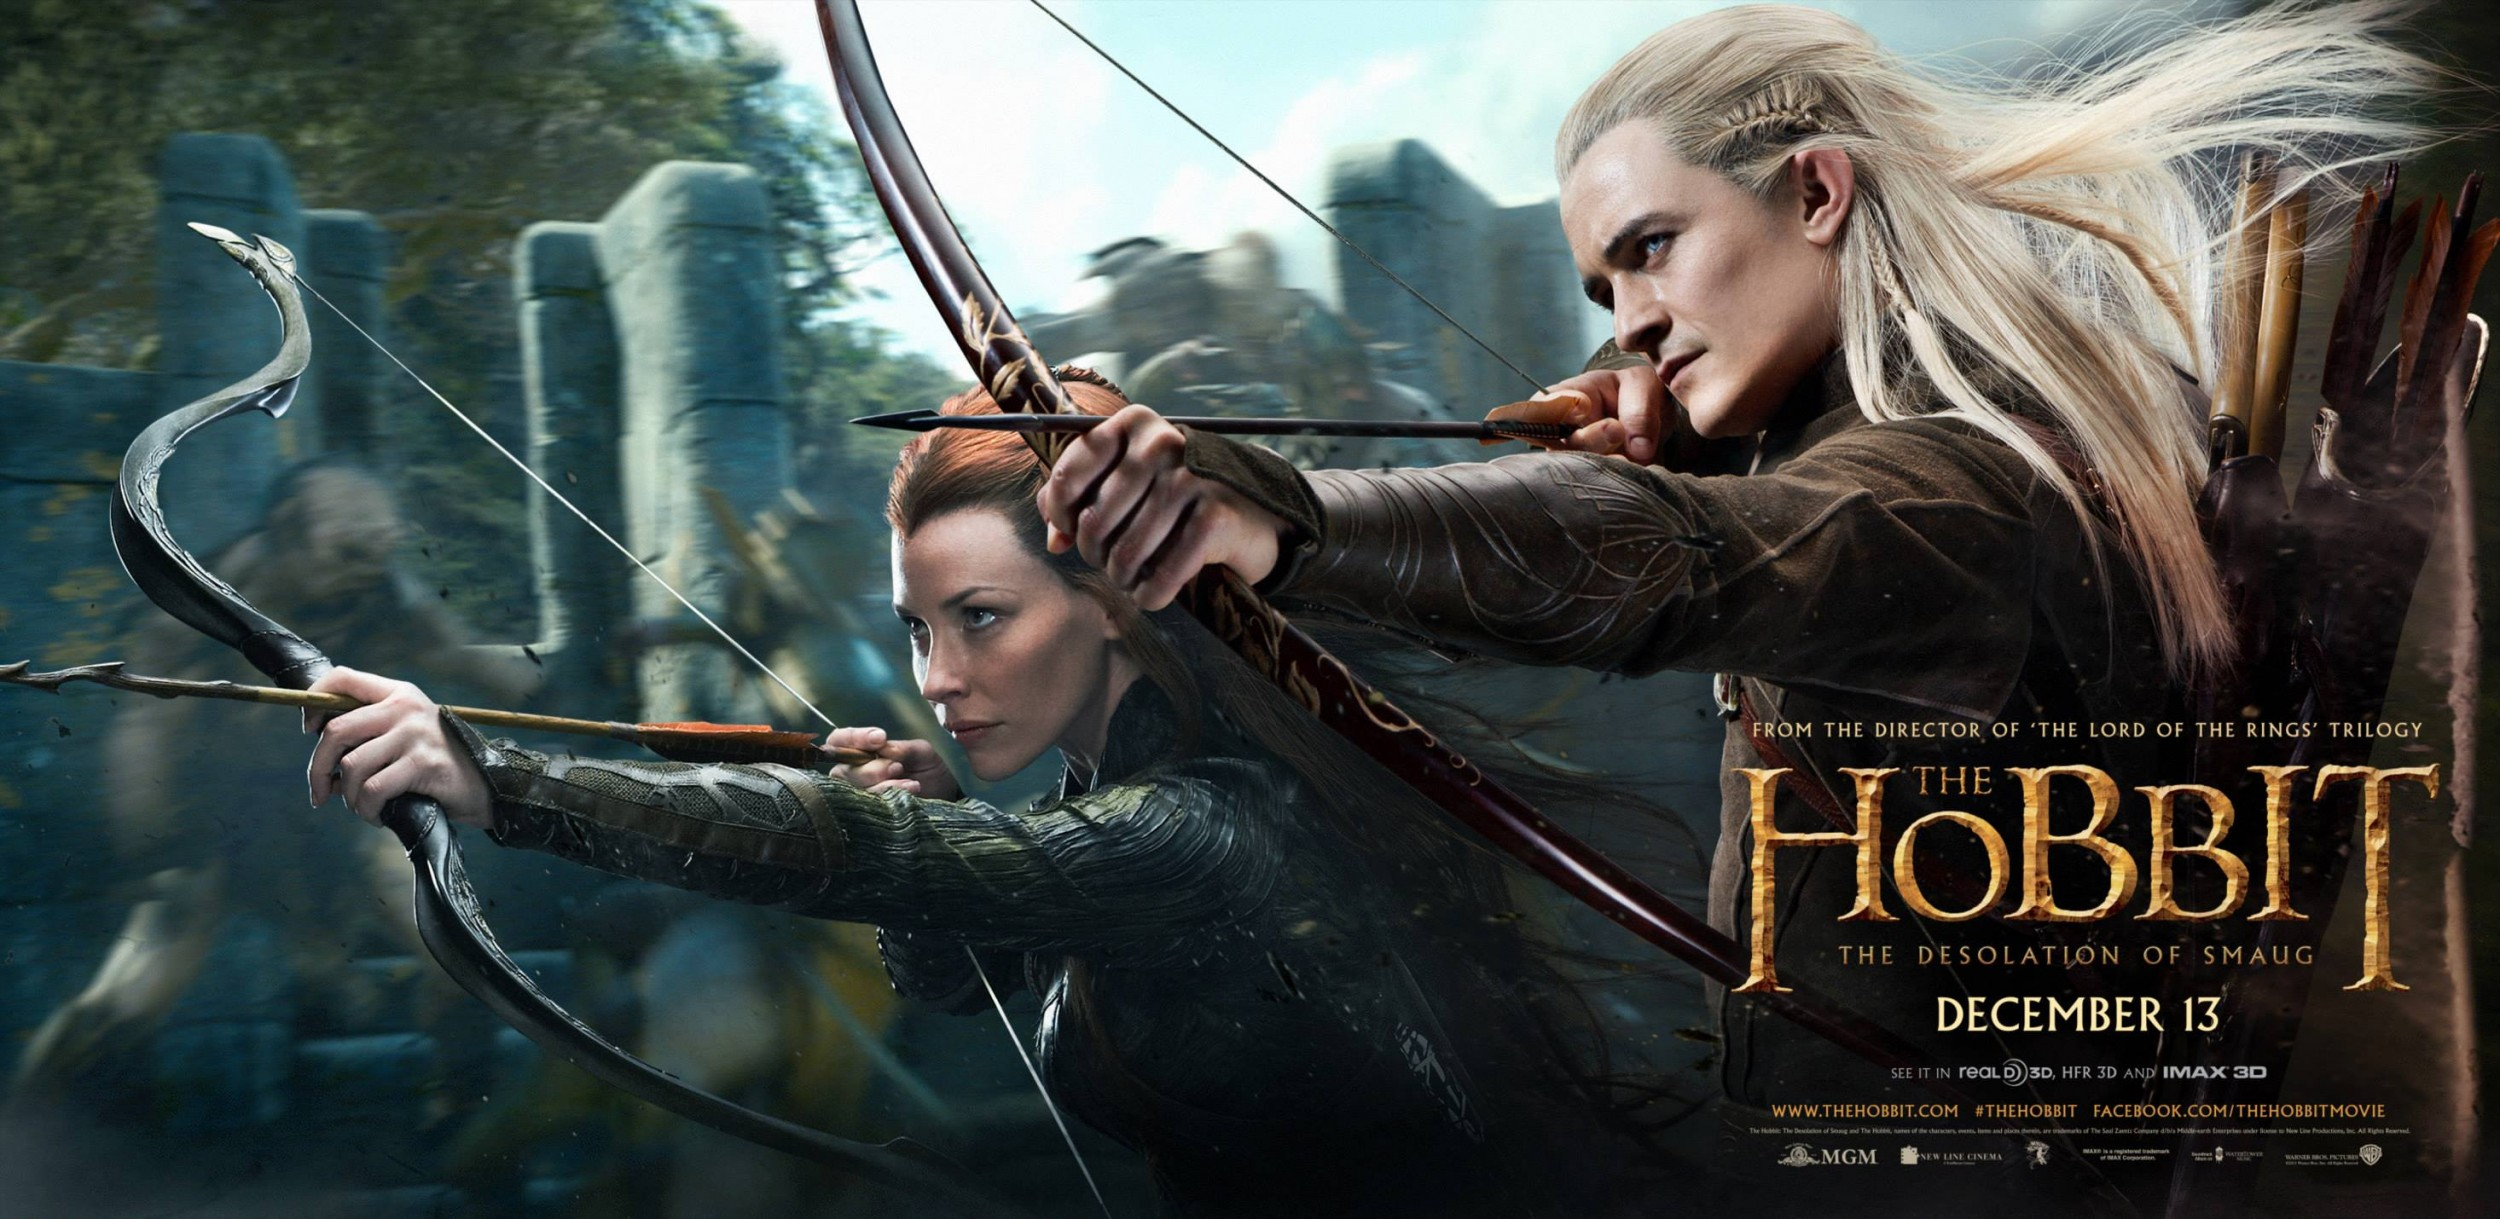 The Hobbit The Desolation of Smaug-Official Poster Banner PROMO BANNER-04OUTUBRO2013